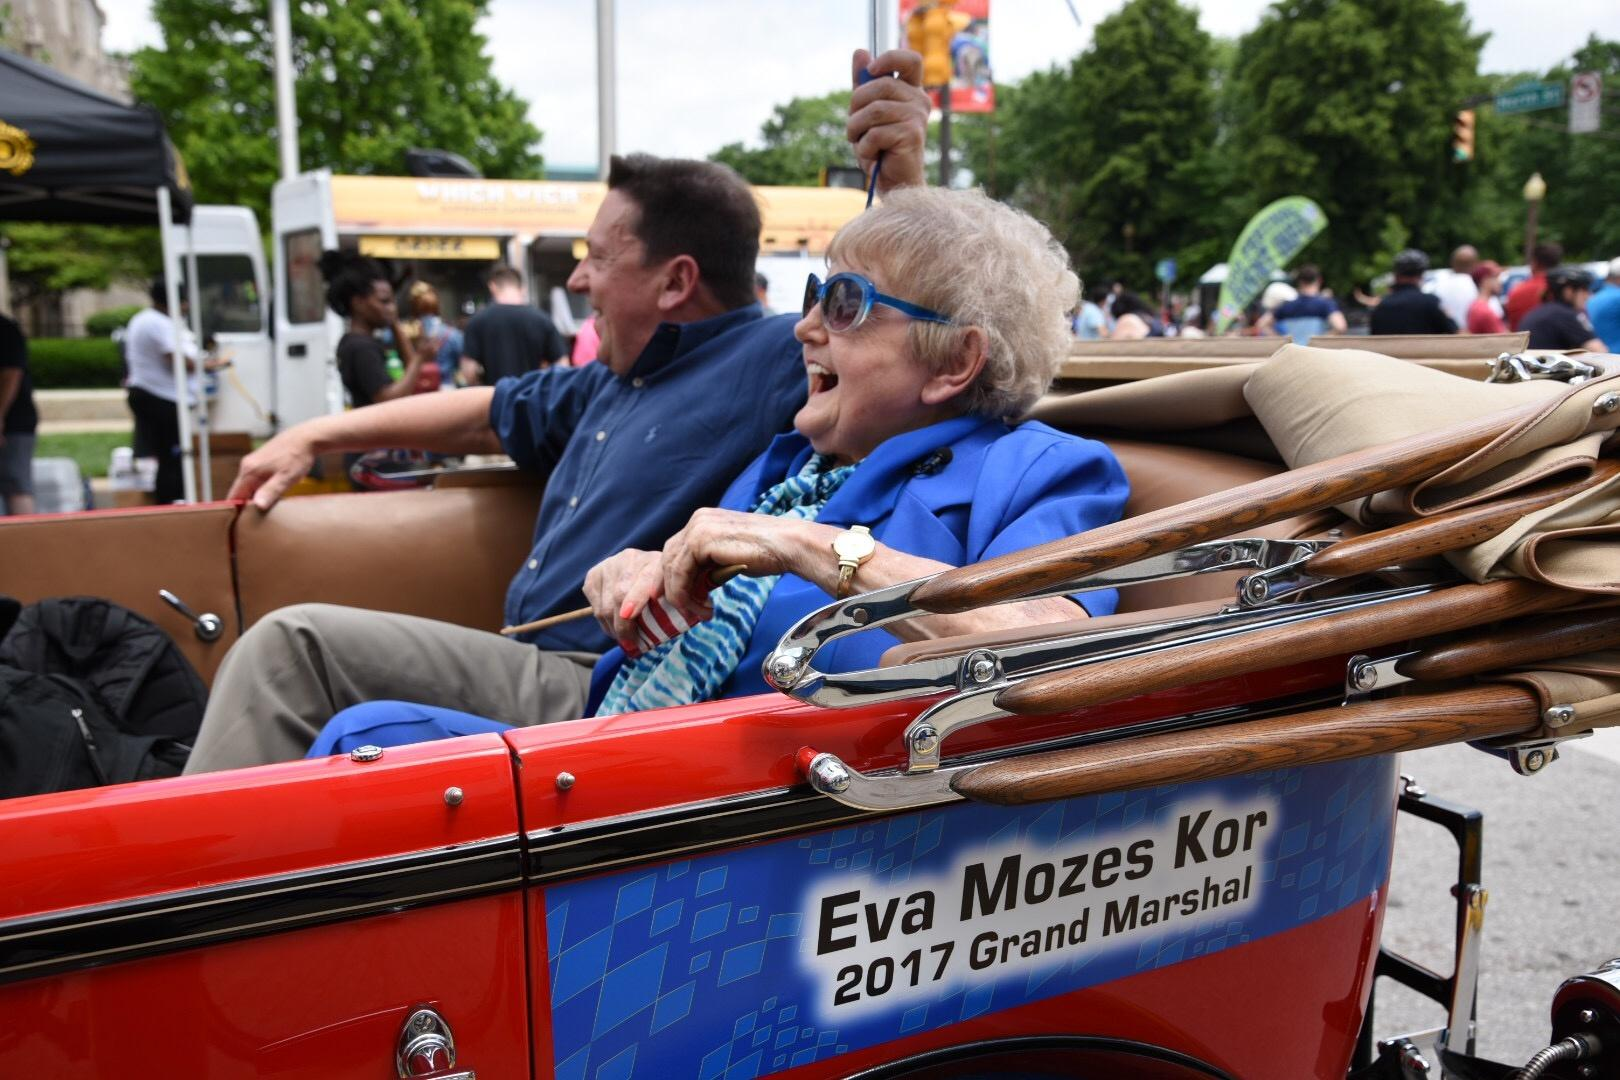 Eva Kor as the 2017 Grand Marshall for the OneAmerica 500 Festival Parade in Indianapolis.